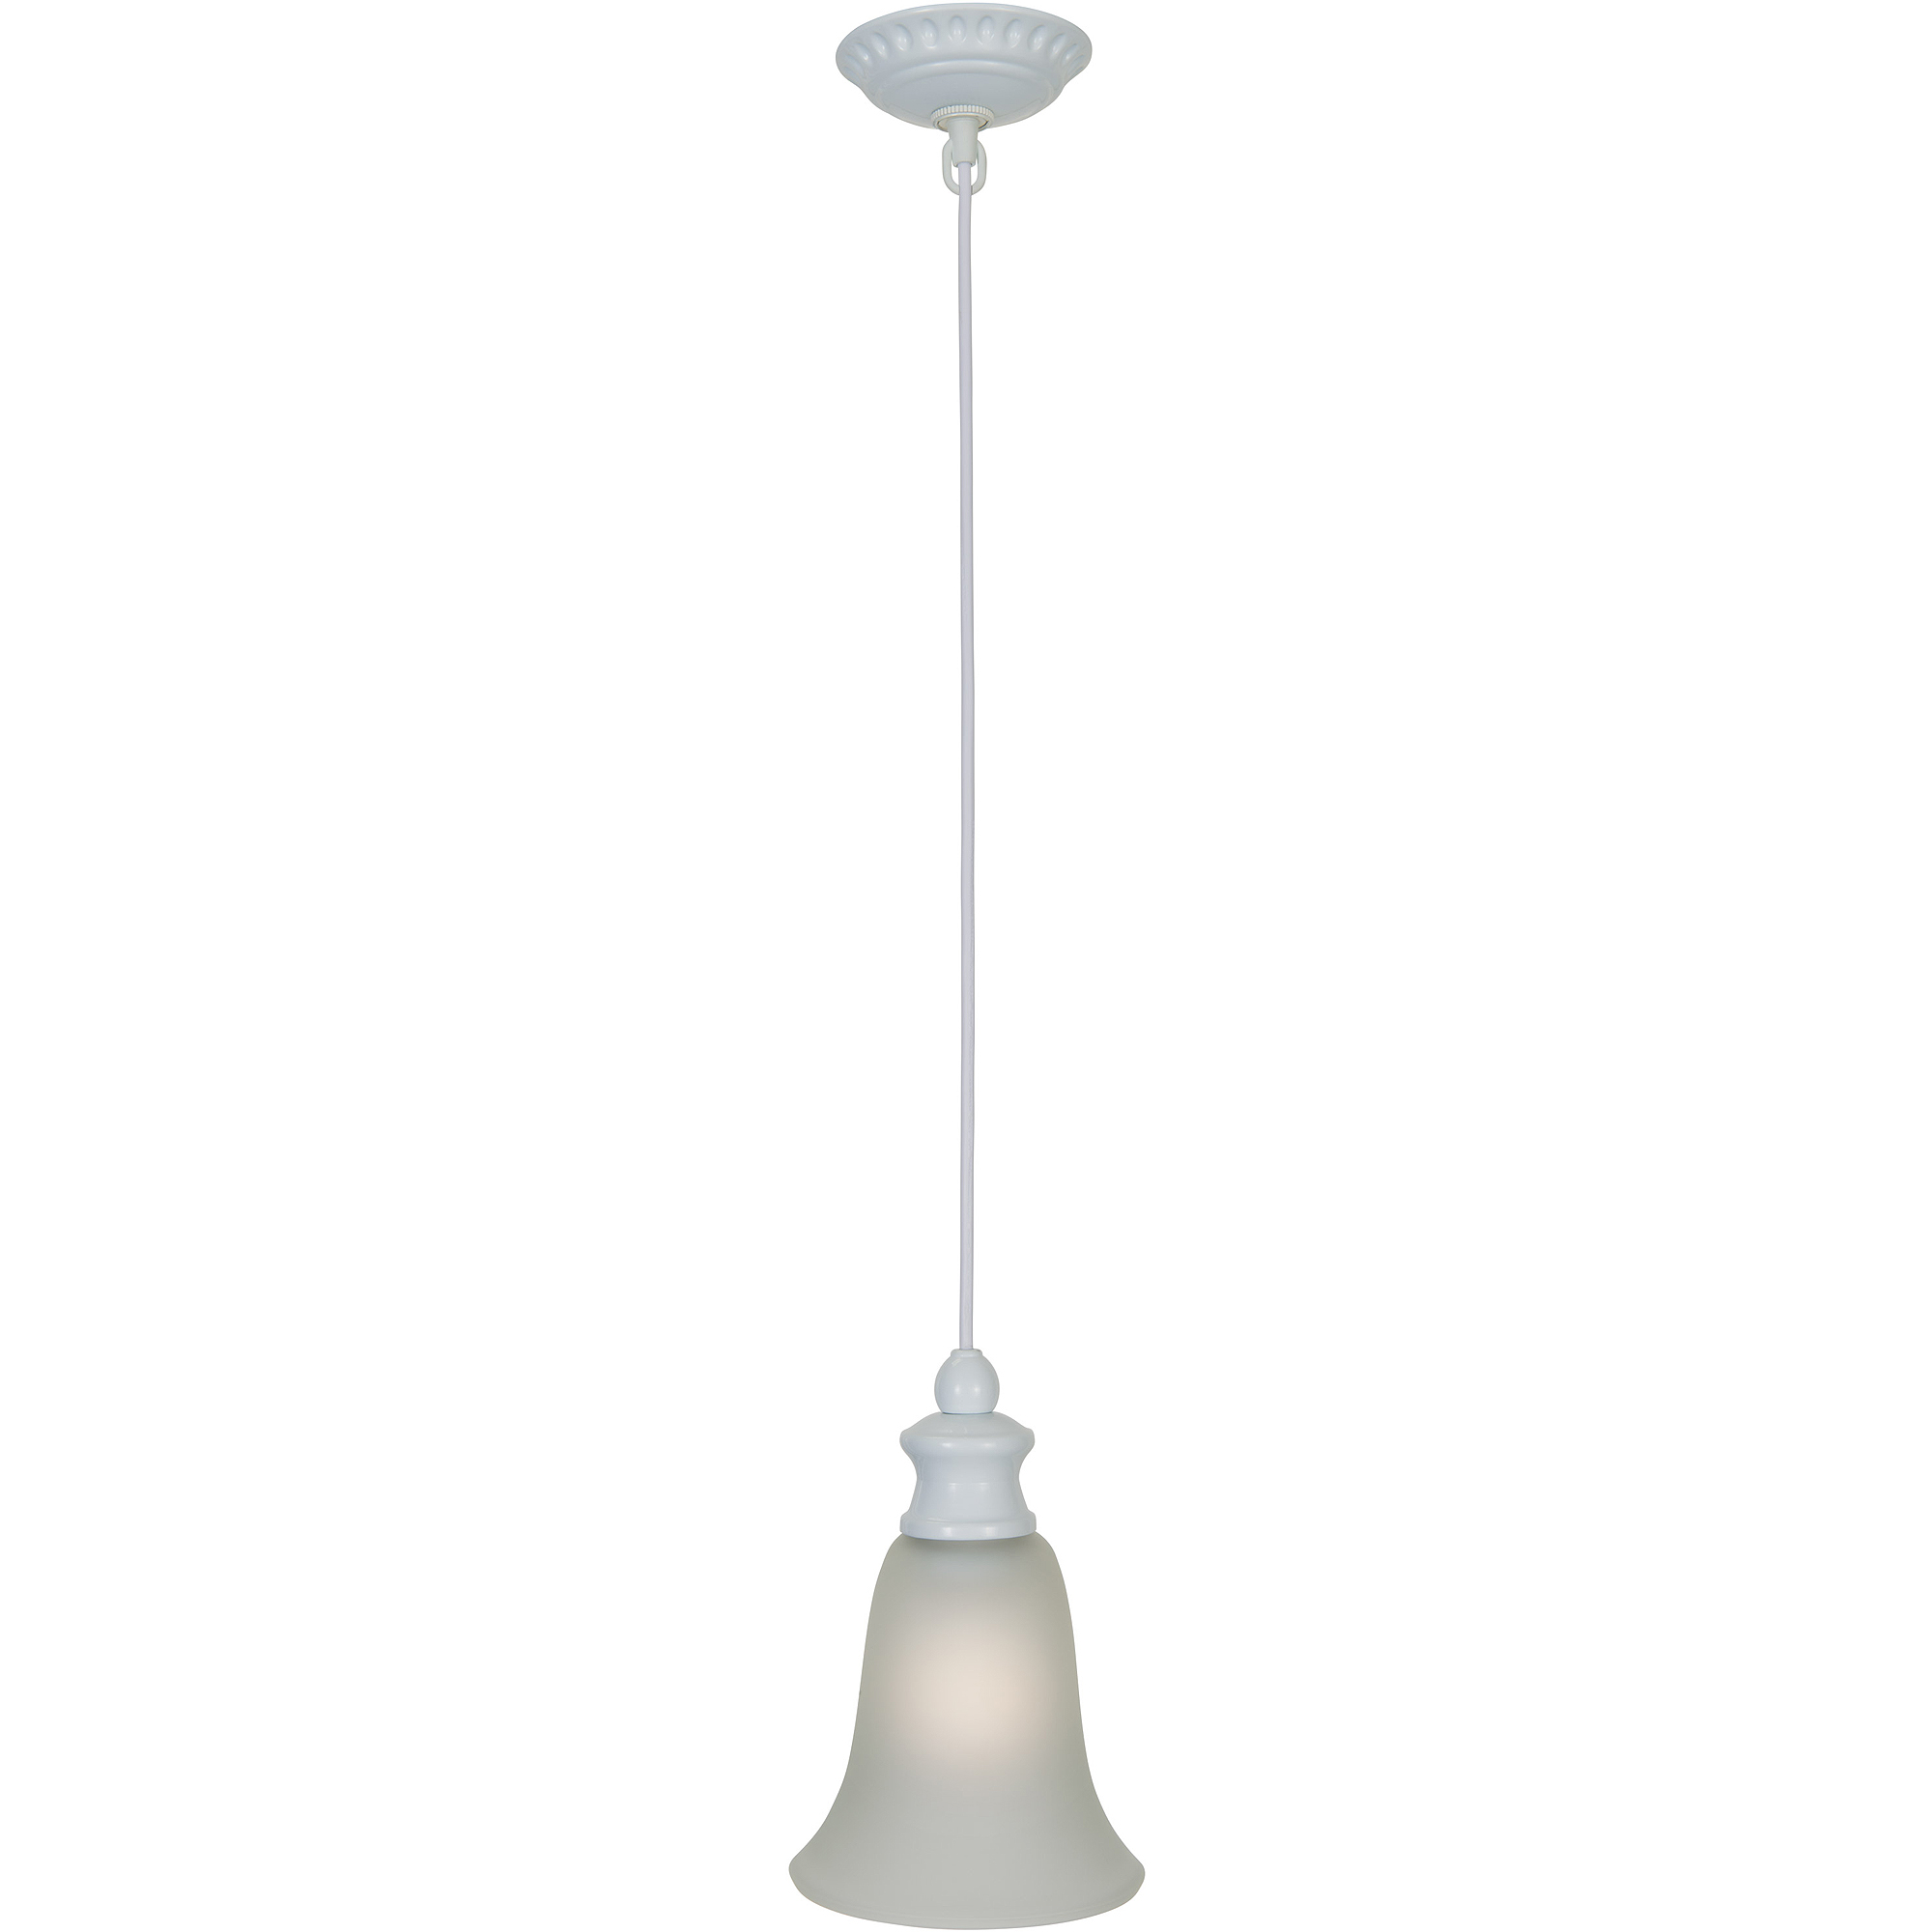 Better Homes and Gardens Pendant Indoor Ceiling Light, White by Hampton Products